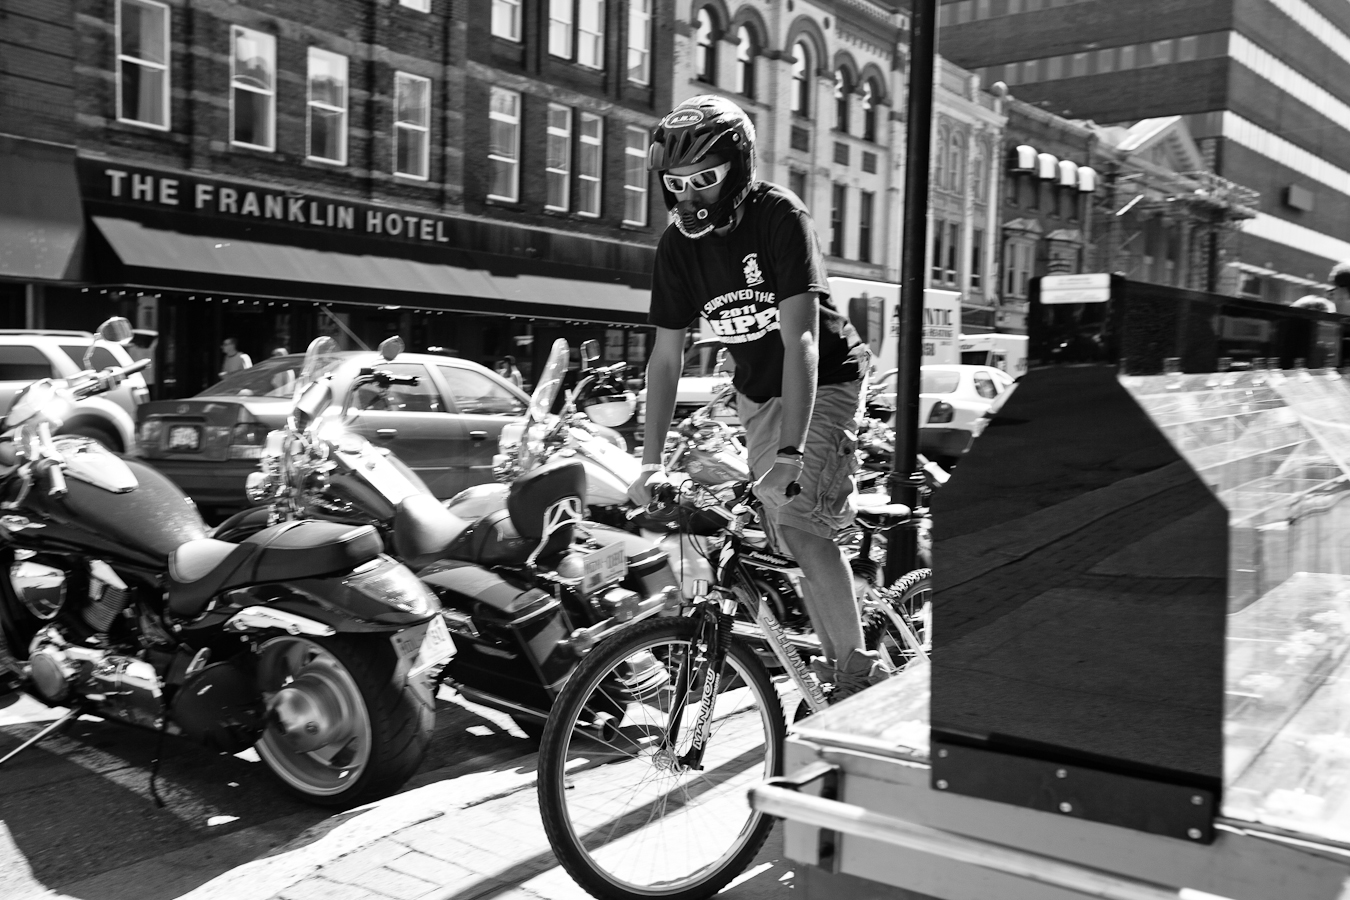 Bikes & Bikers shot by //d.